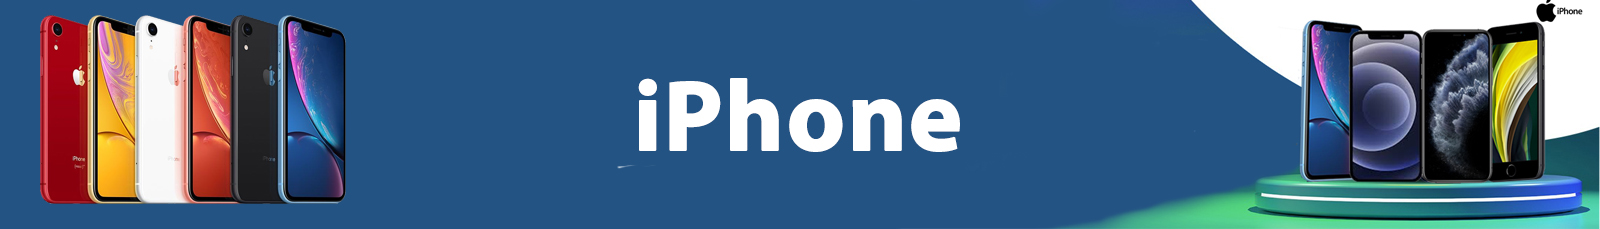 iphone small banner